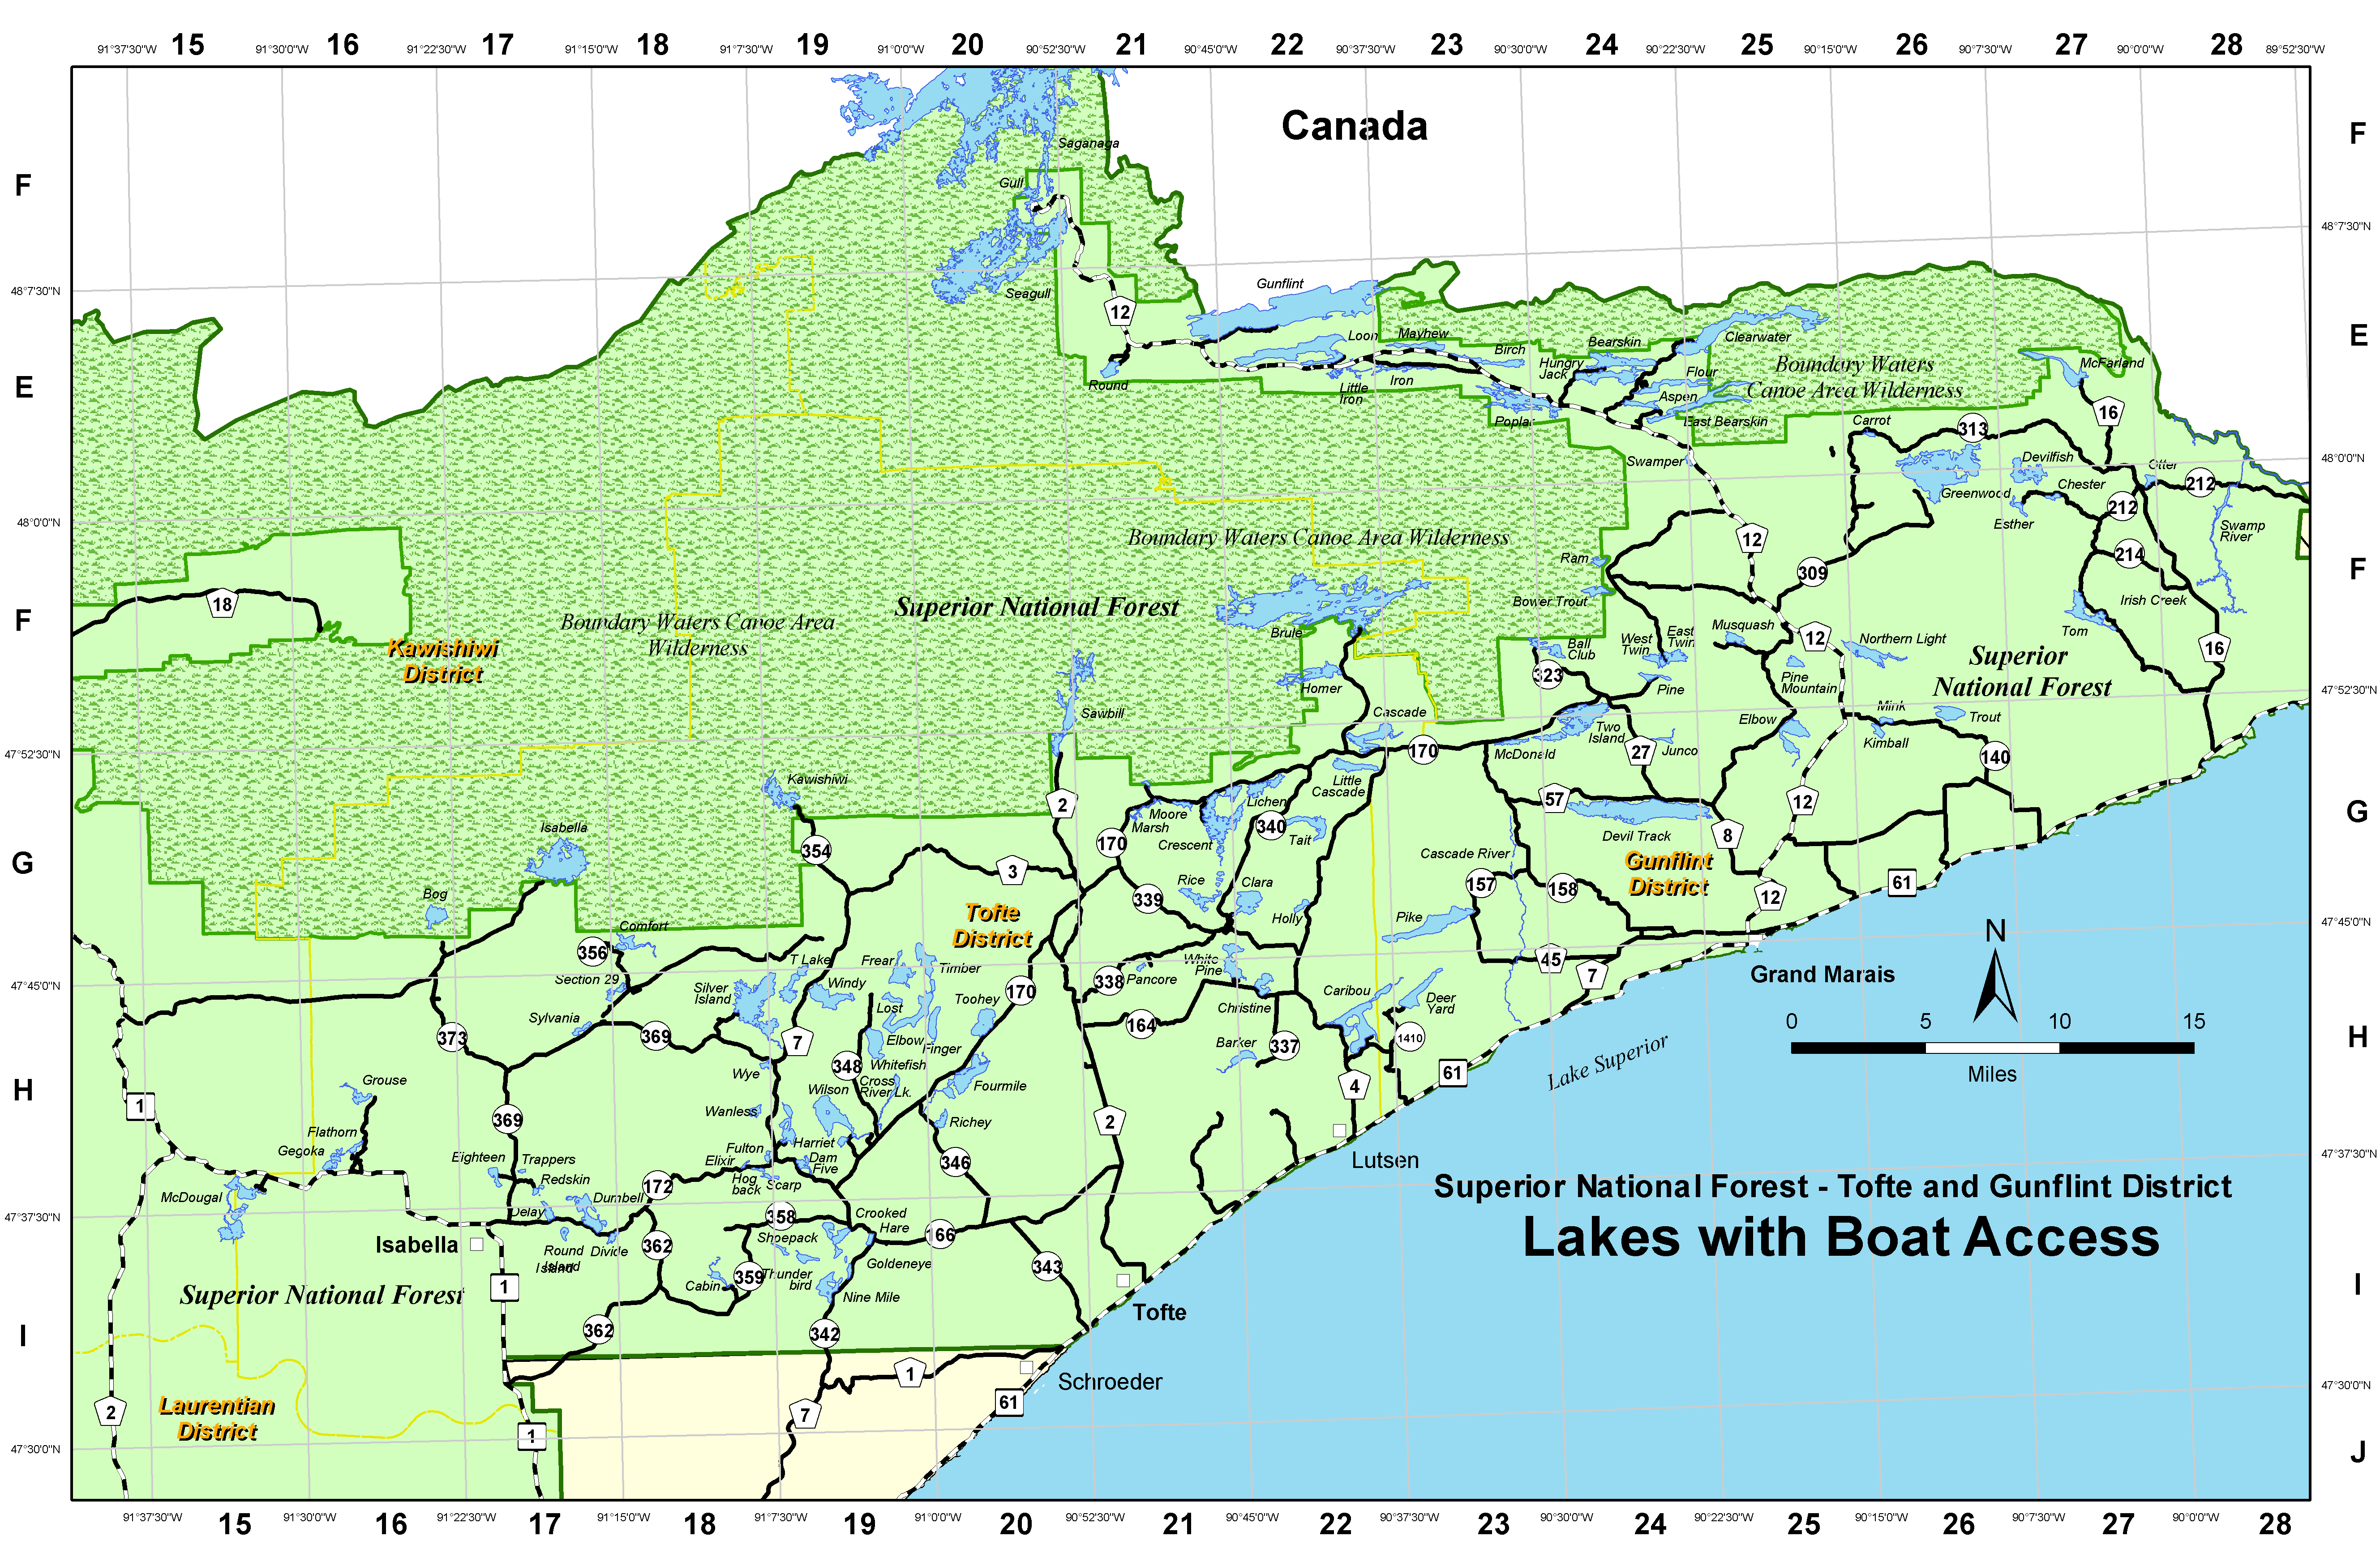 a map of lakes on the tofte and gunflint districts with boat access